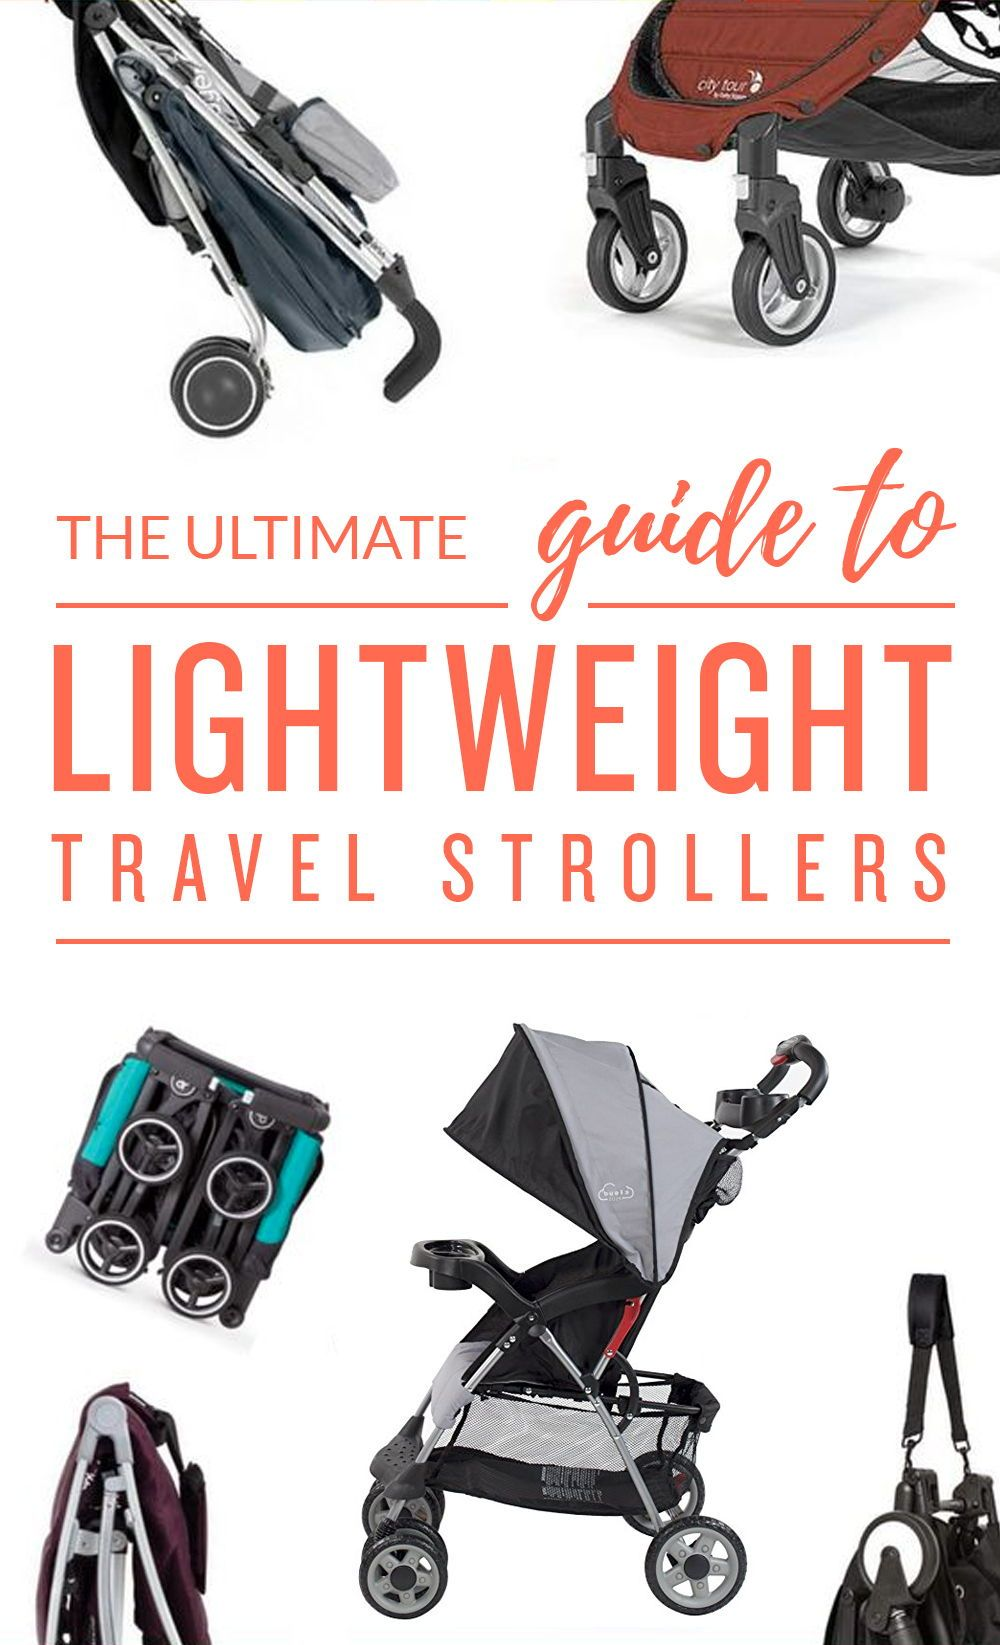 10 Best Travel Strollers for Babies & Toddlers (2020